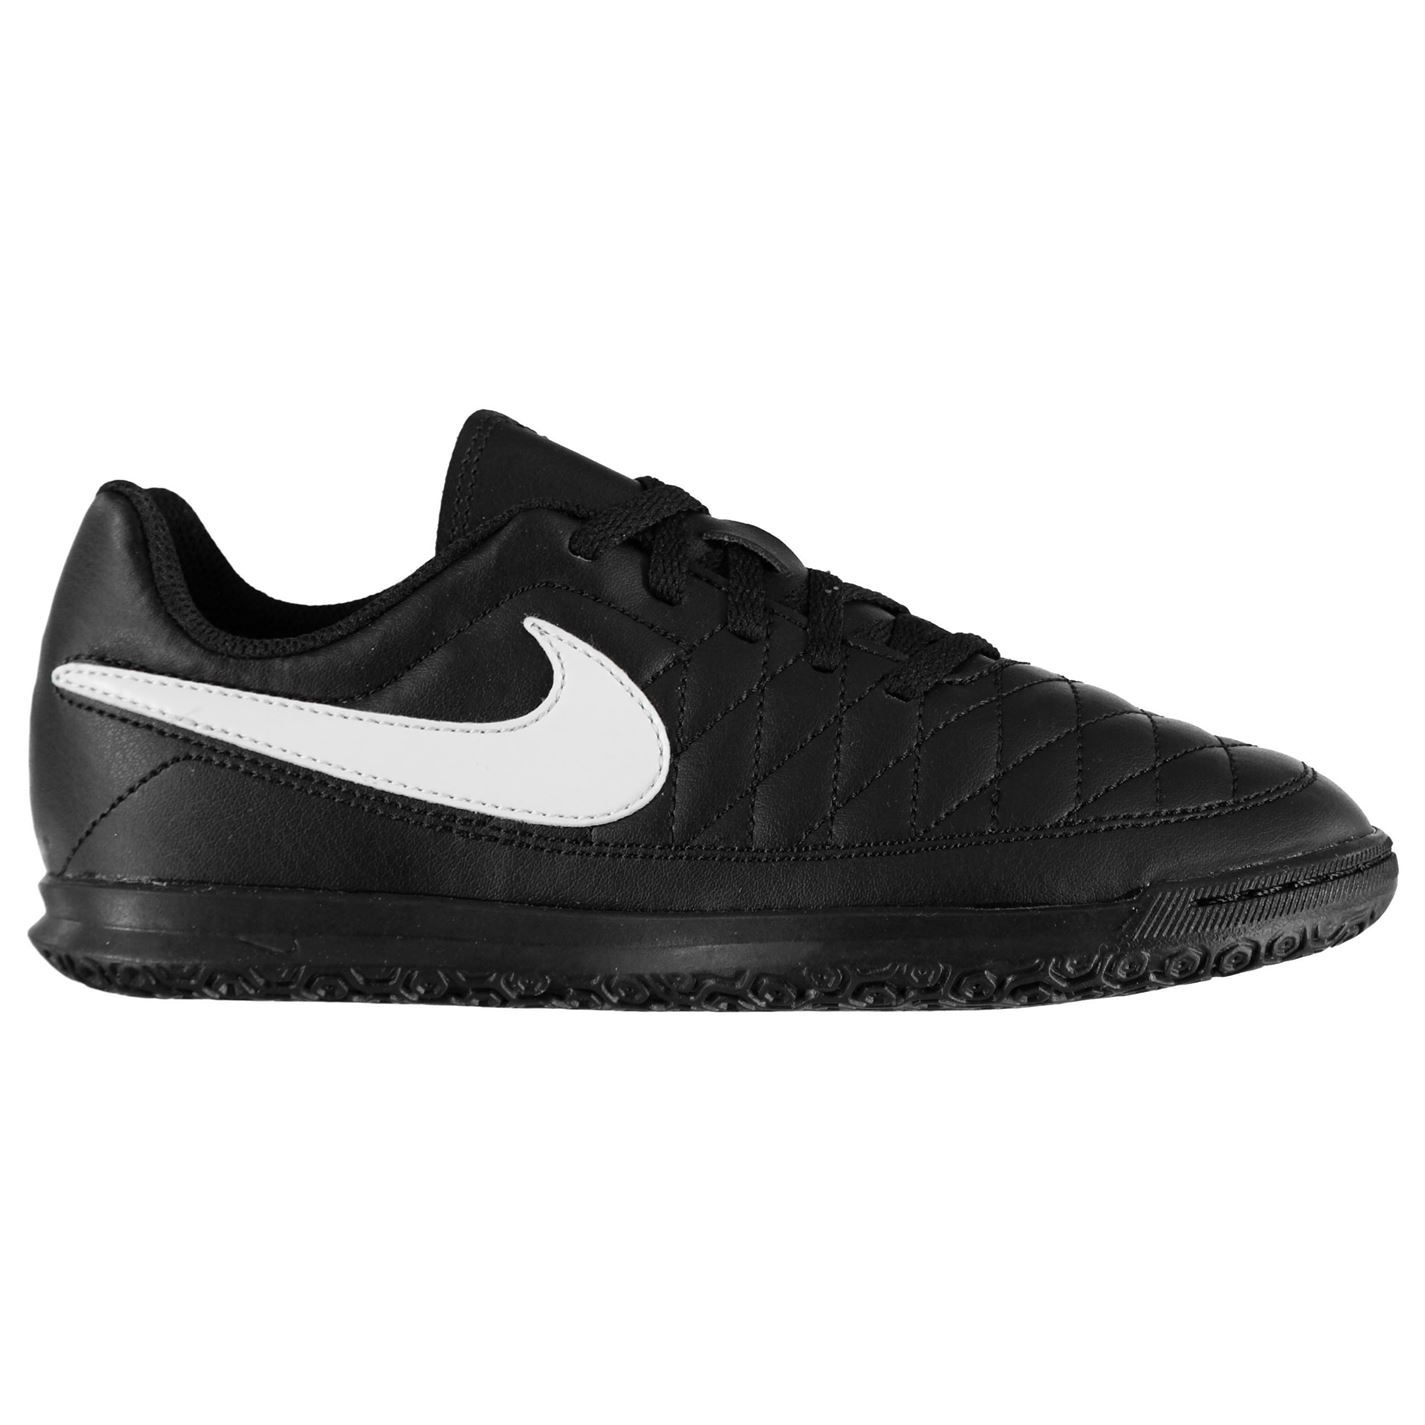 Nike-majestry-Indoor-Court-Football-Baskets-enfant-foot-baskets-chaussures miniature 10